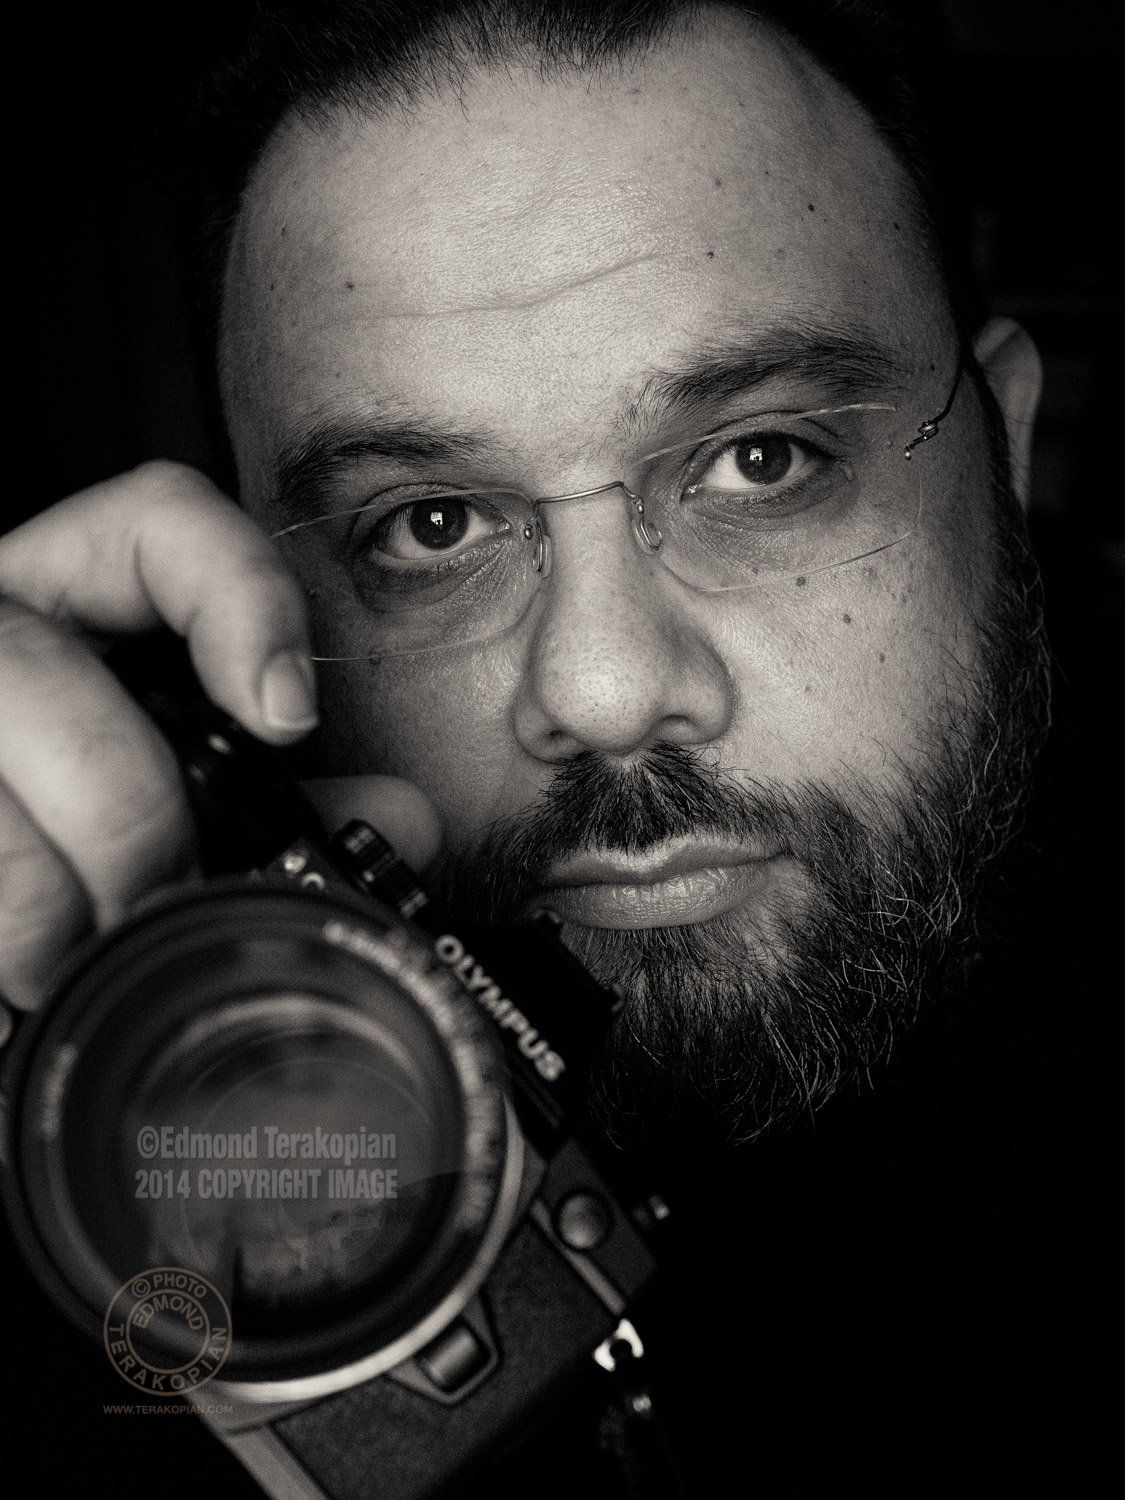 A self portrait by photographer and film maker Edmond Terakopian. Picture shows his Olympus OM-D E-M1 camera. London. February 23, 2015. Photo: Edmond Terakopian